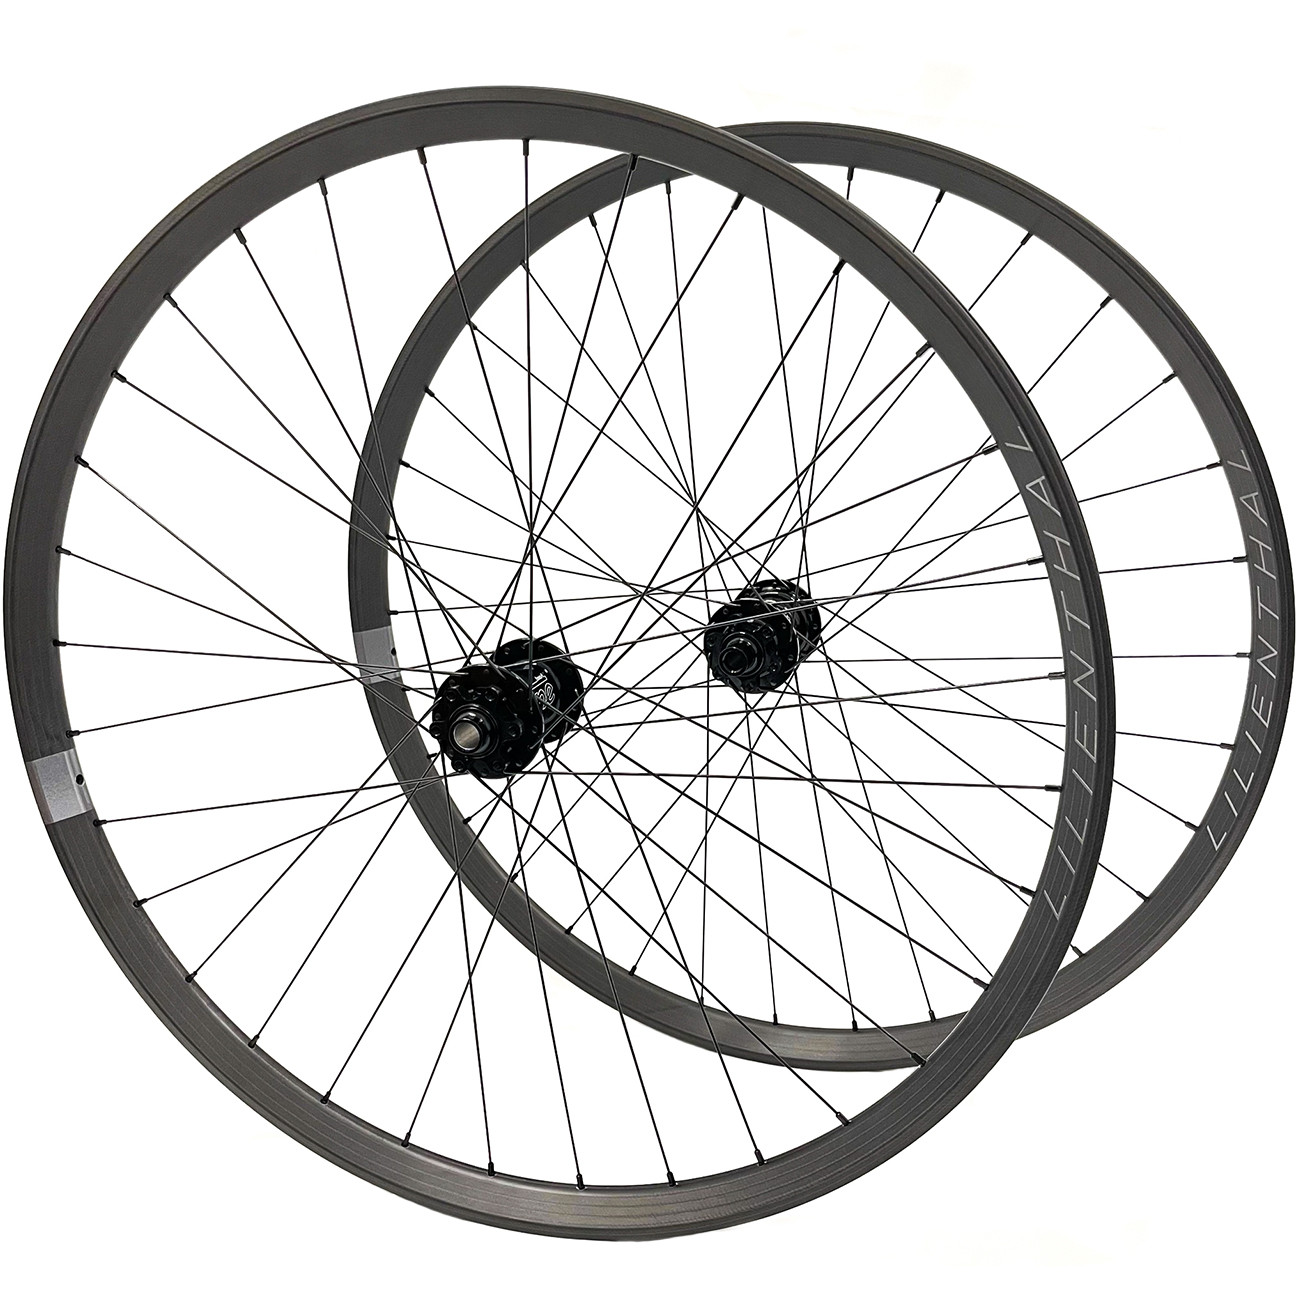 Picture of Lilienthal XE Tune - 27.5 Inches 650B Carbon Wheelset - KillHill 32h / ClimbHill 32h - 6-Bolt - FW: 15x110mm | RW: 12x148mm - Boost - SRAM XD